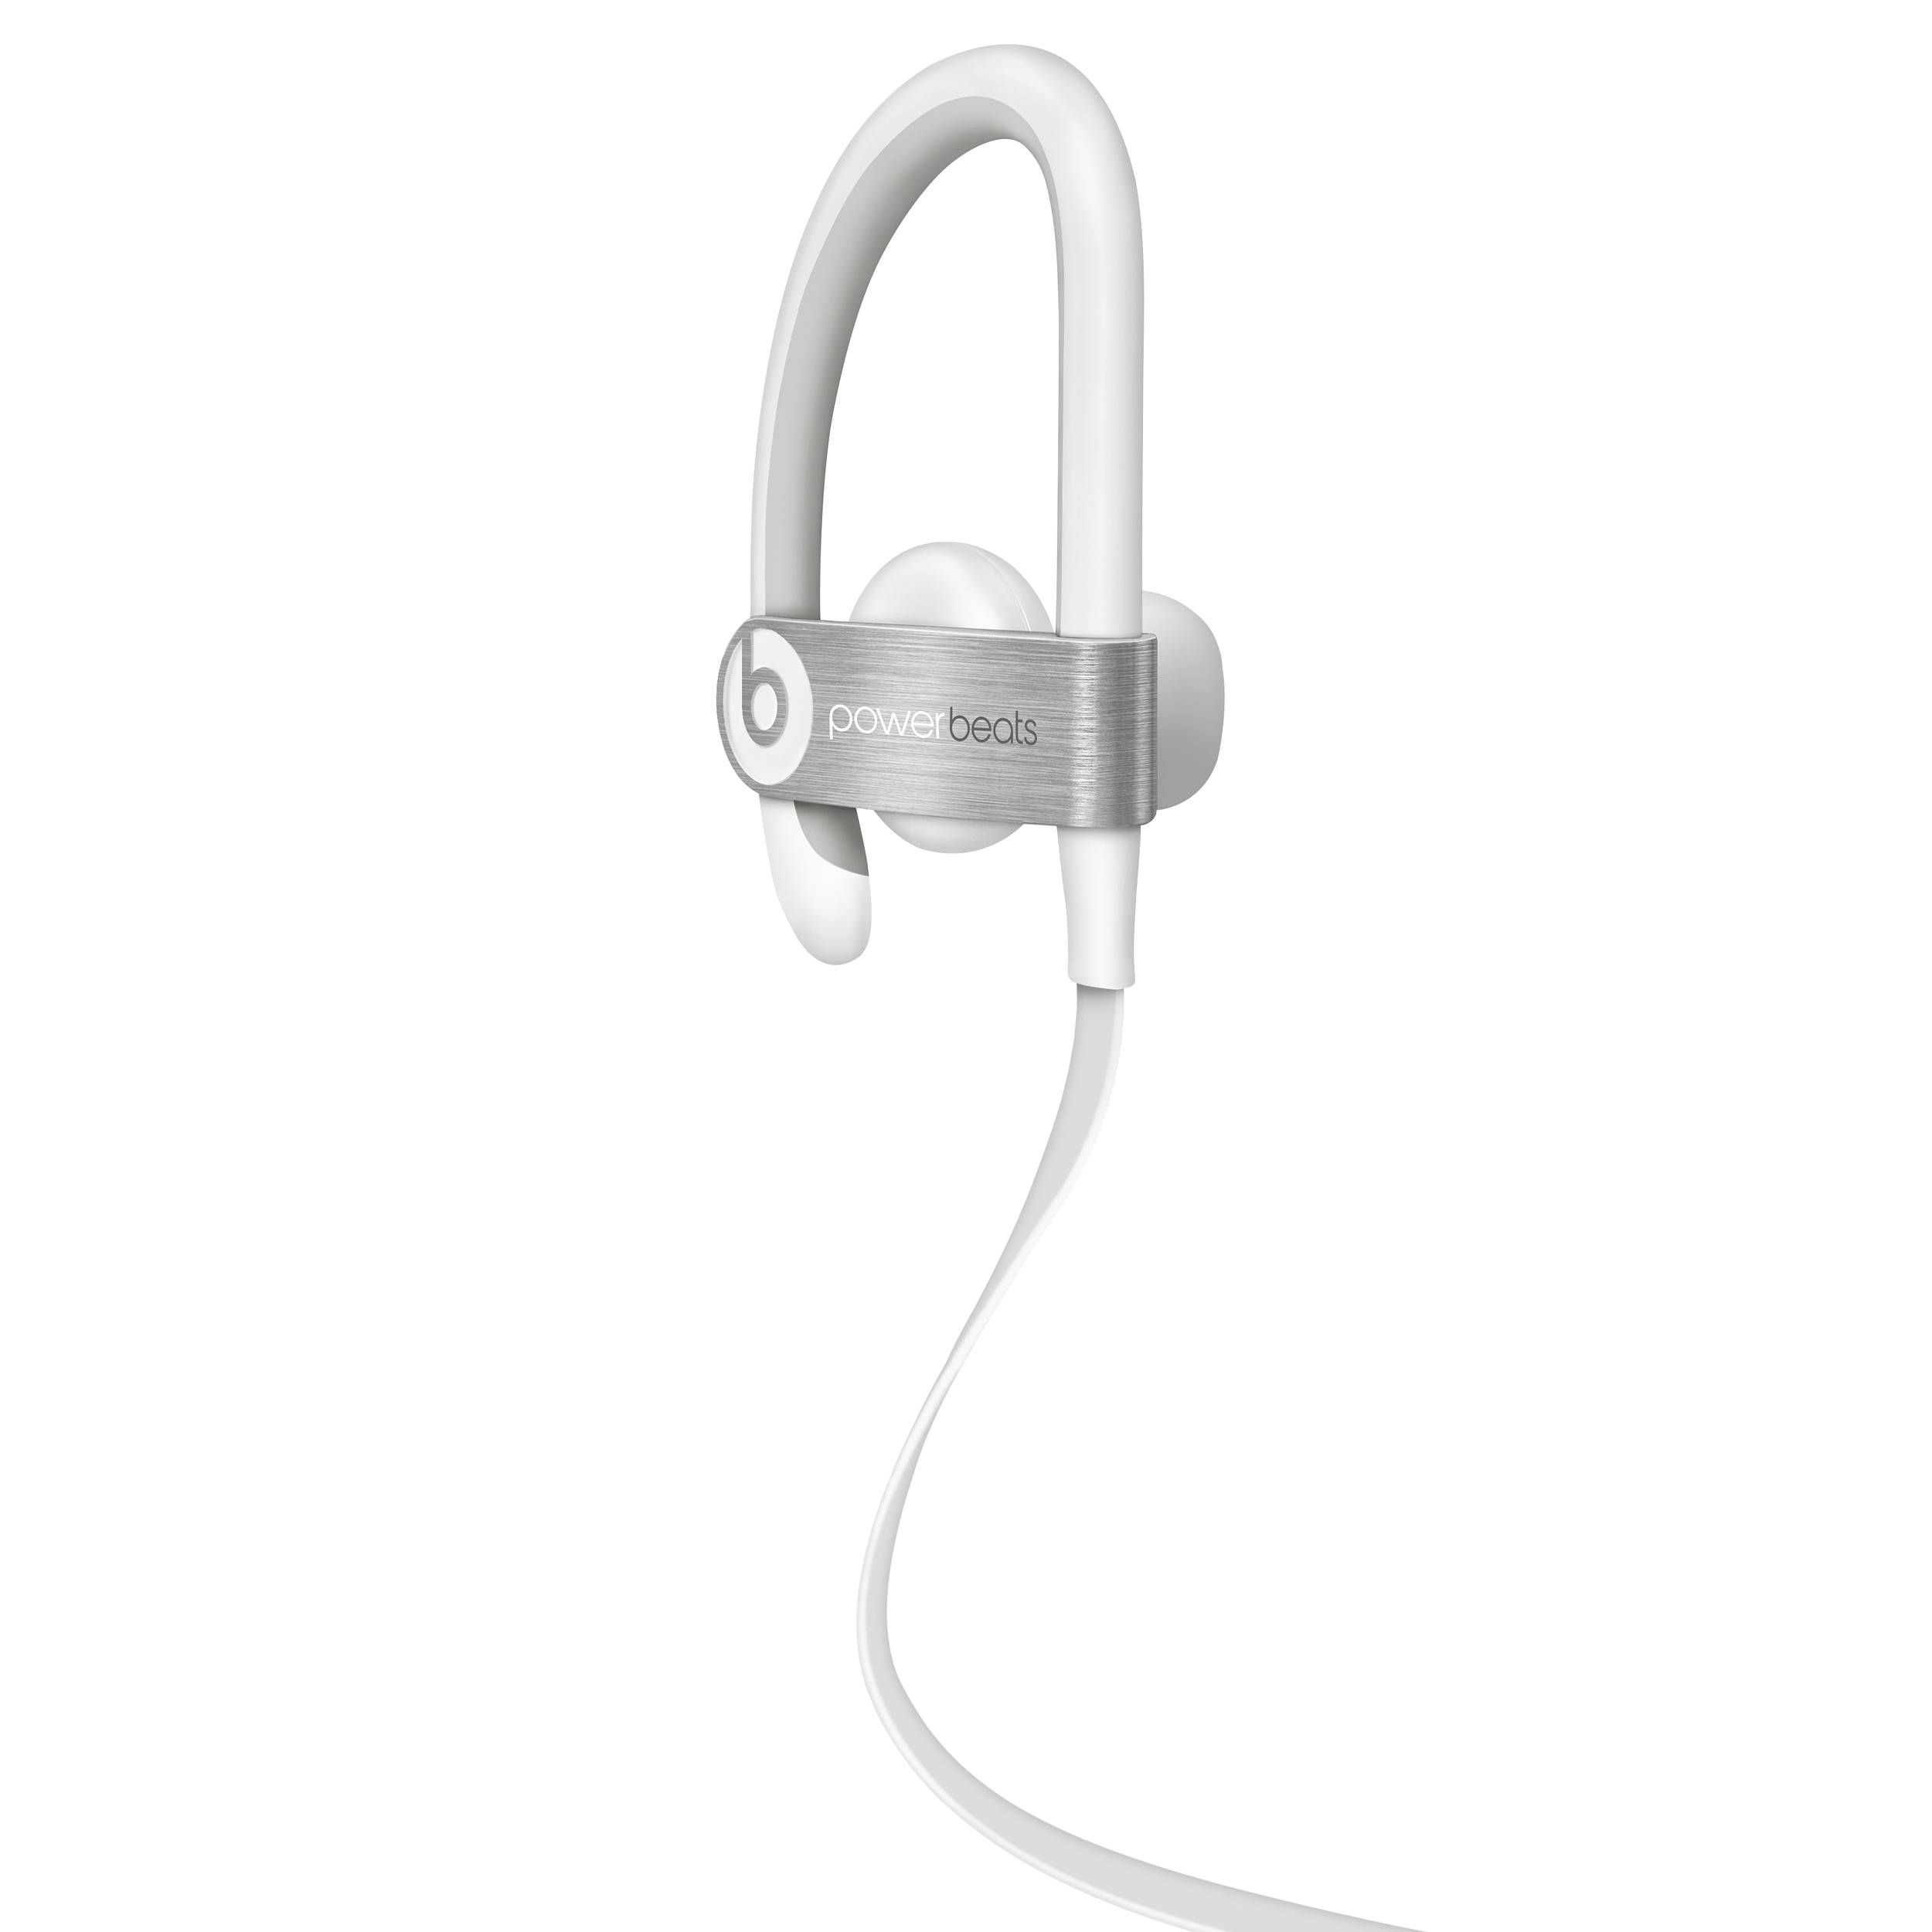 6b376b785ce Beats by Dr. Dre Powerbeats2 Wired Earbuds (White) MHAA2AM/A B&H